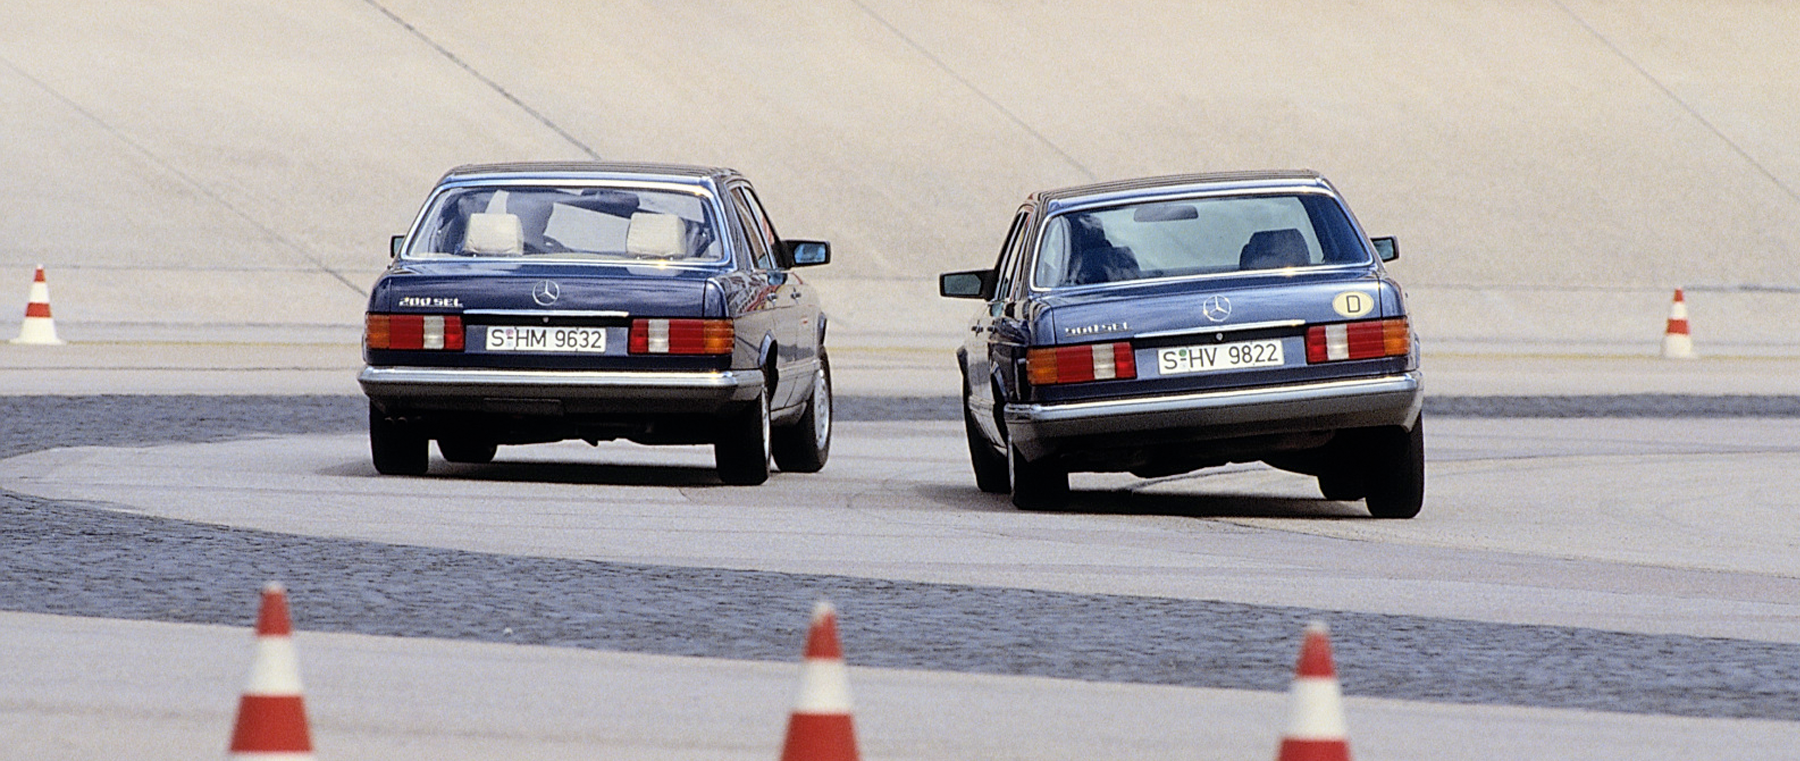 Mercedes-Benz W126: Best of the Best!